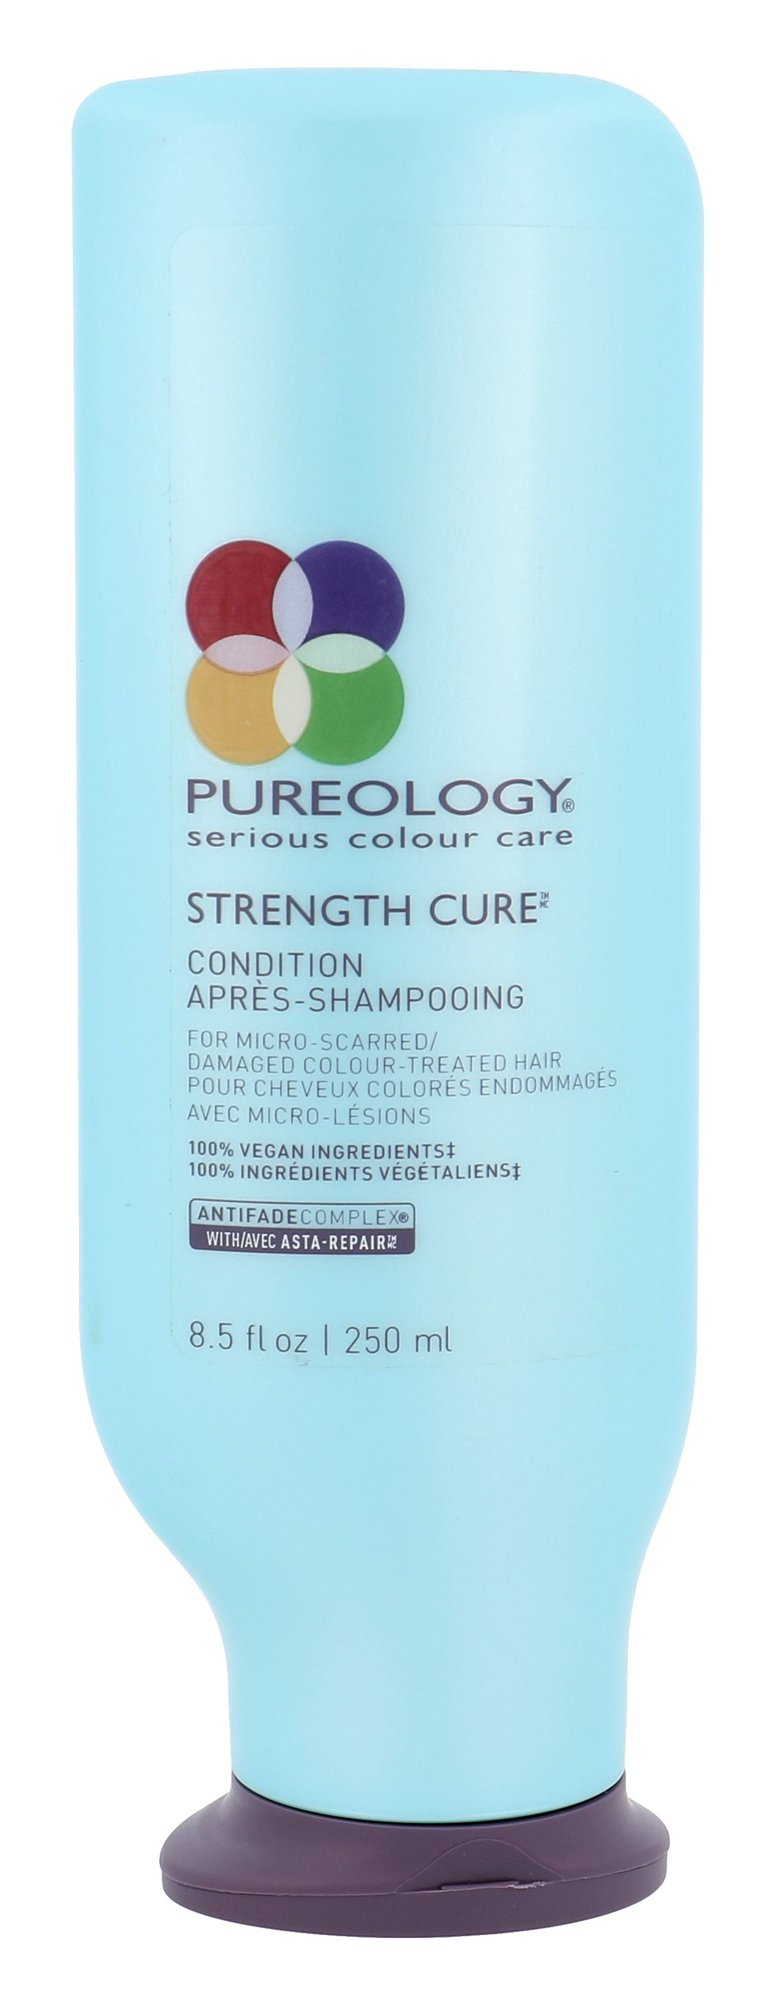 Redken Pureology Strength Cure Condition Cosmetic 250ml